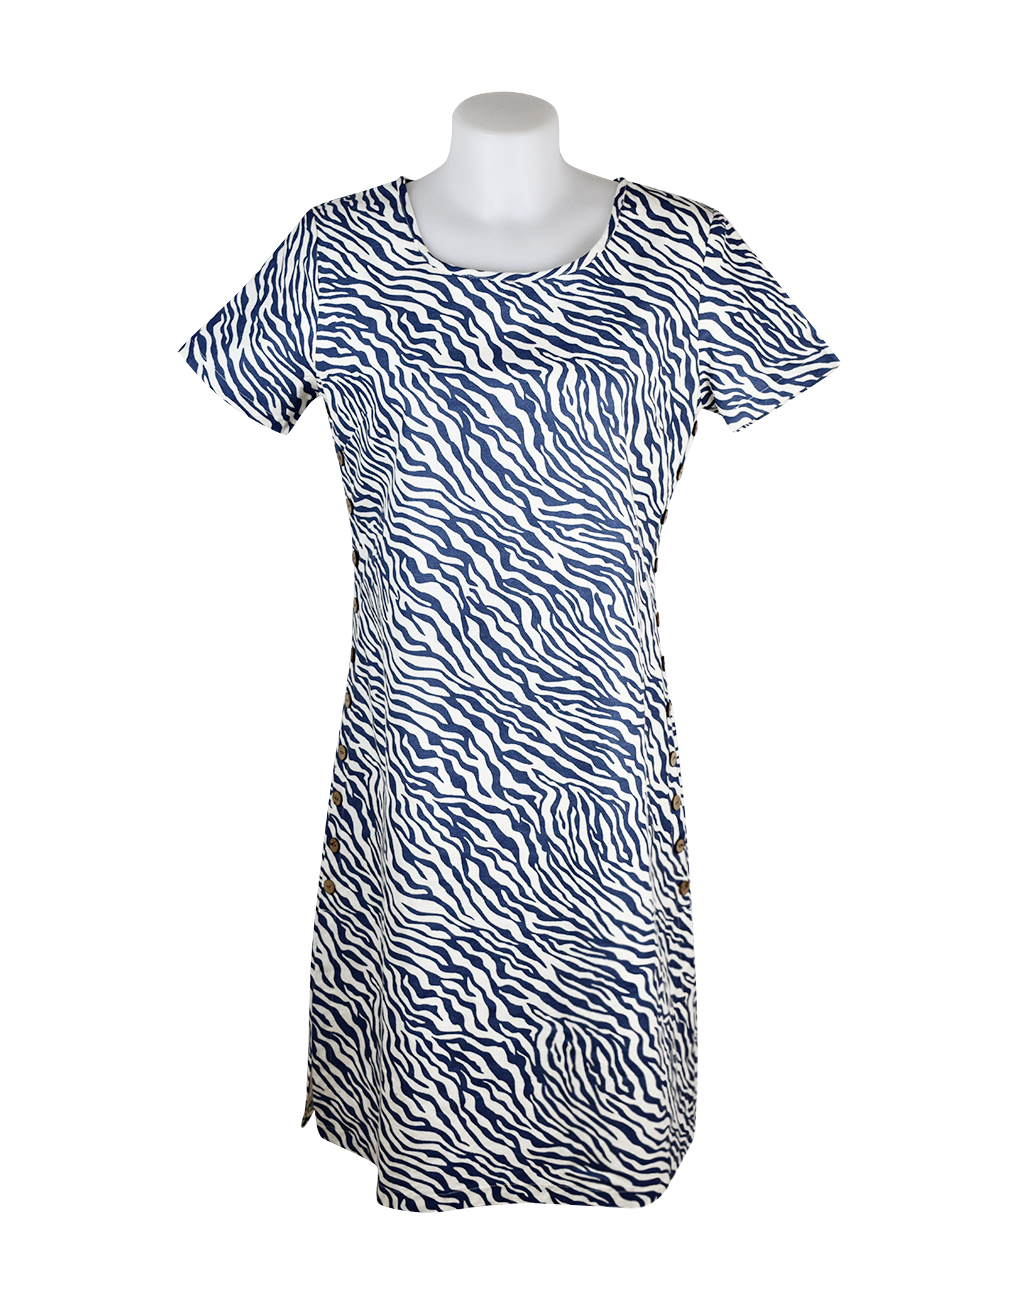 Alice Collins Kylie Dress Indigo Zebra Front 024S070